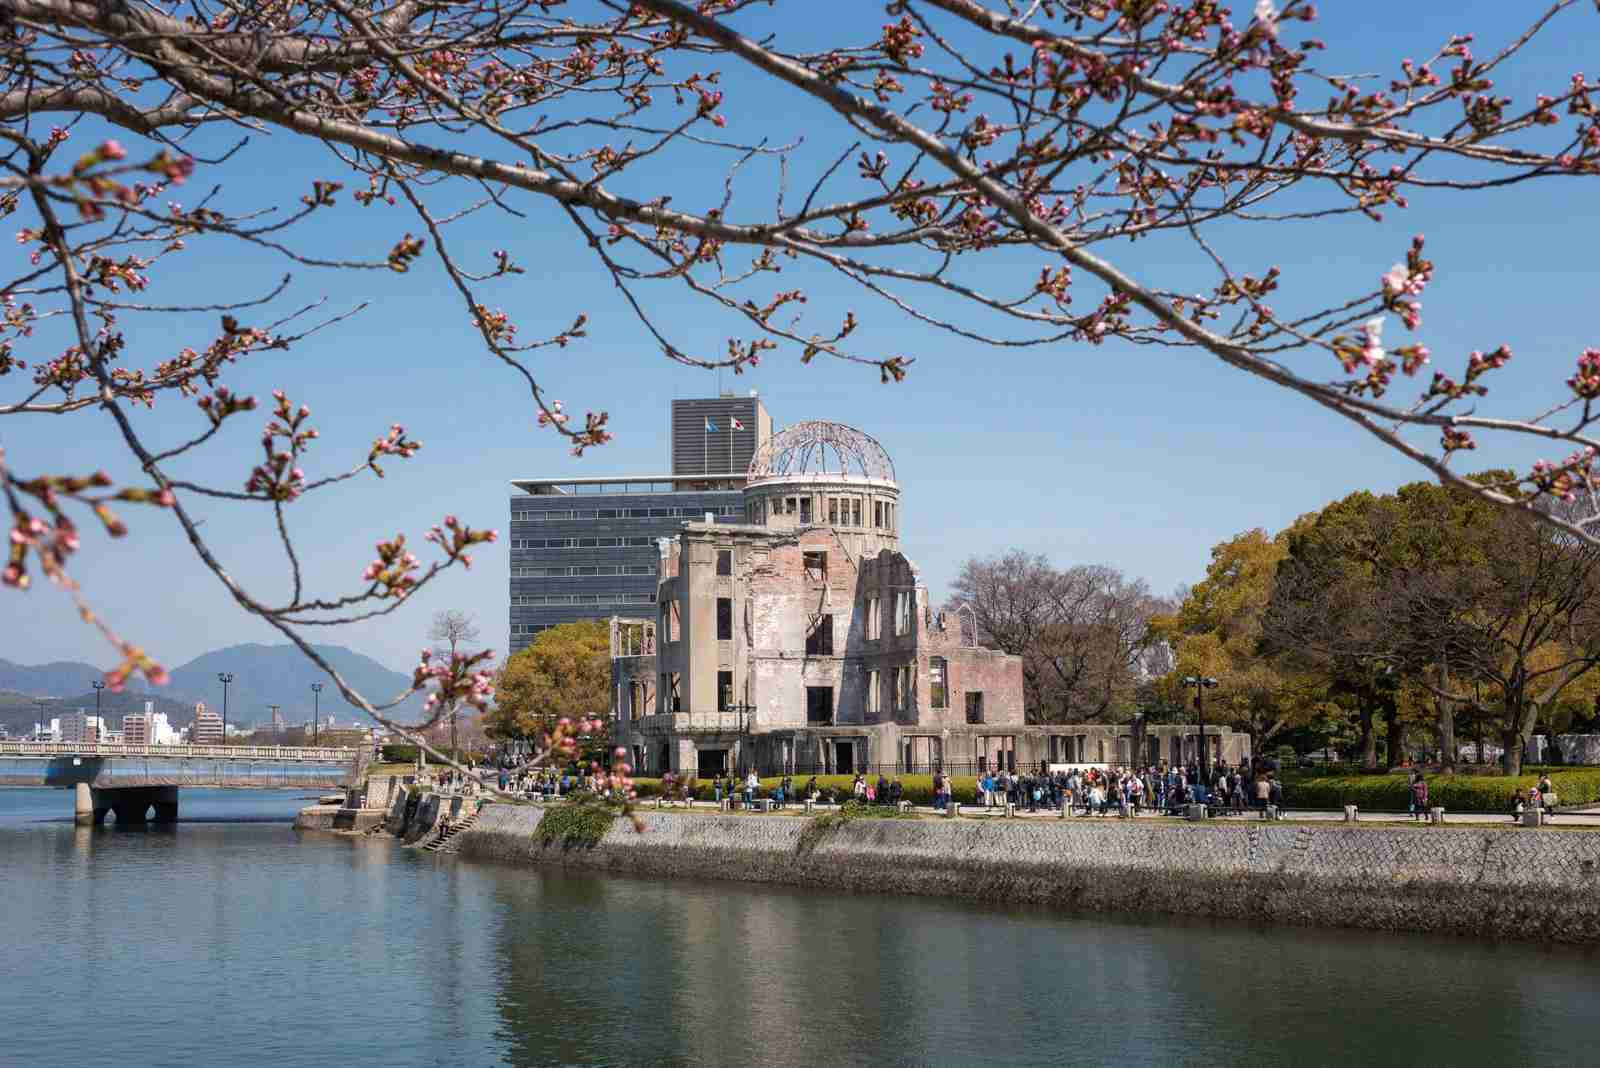 The Hiroshima Peace Memorial. (Photo by Thanan/Getty Images)